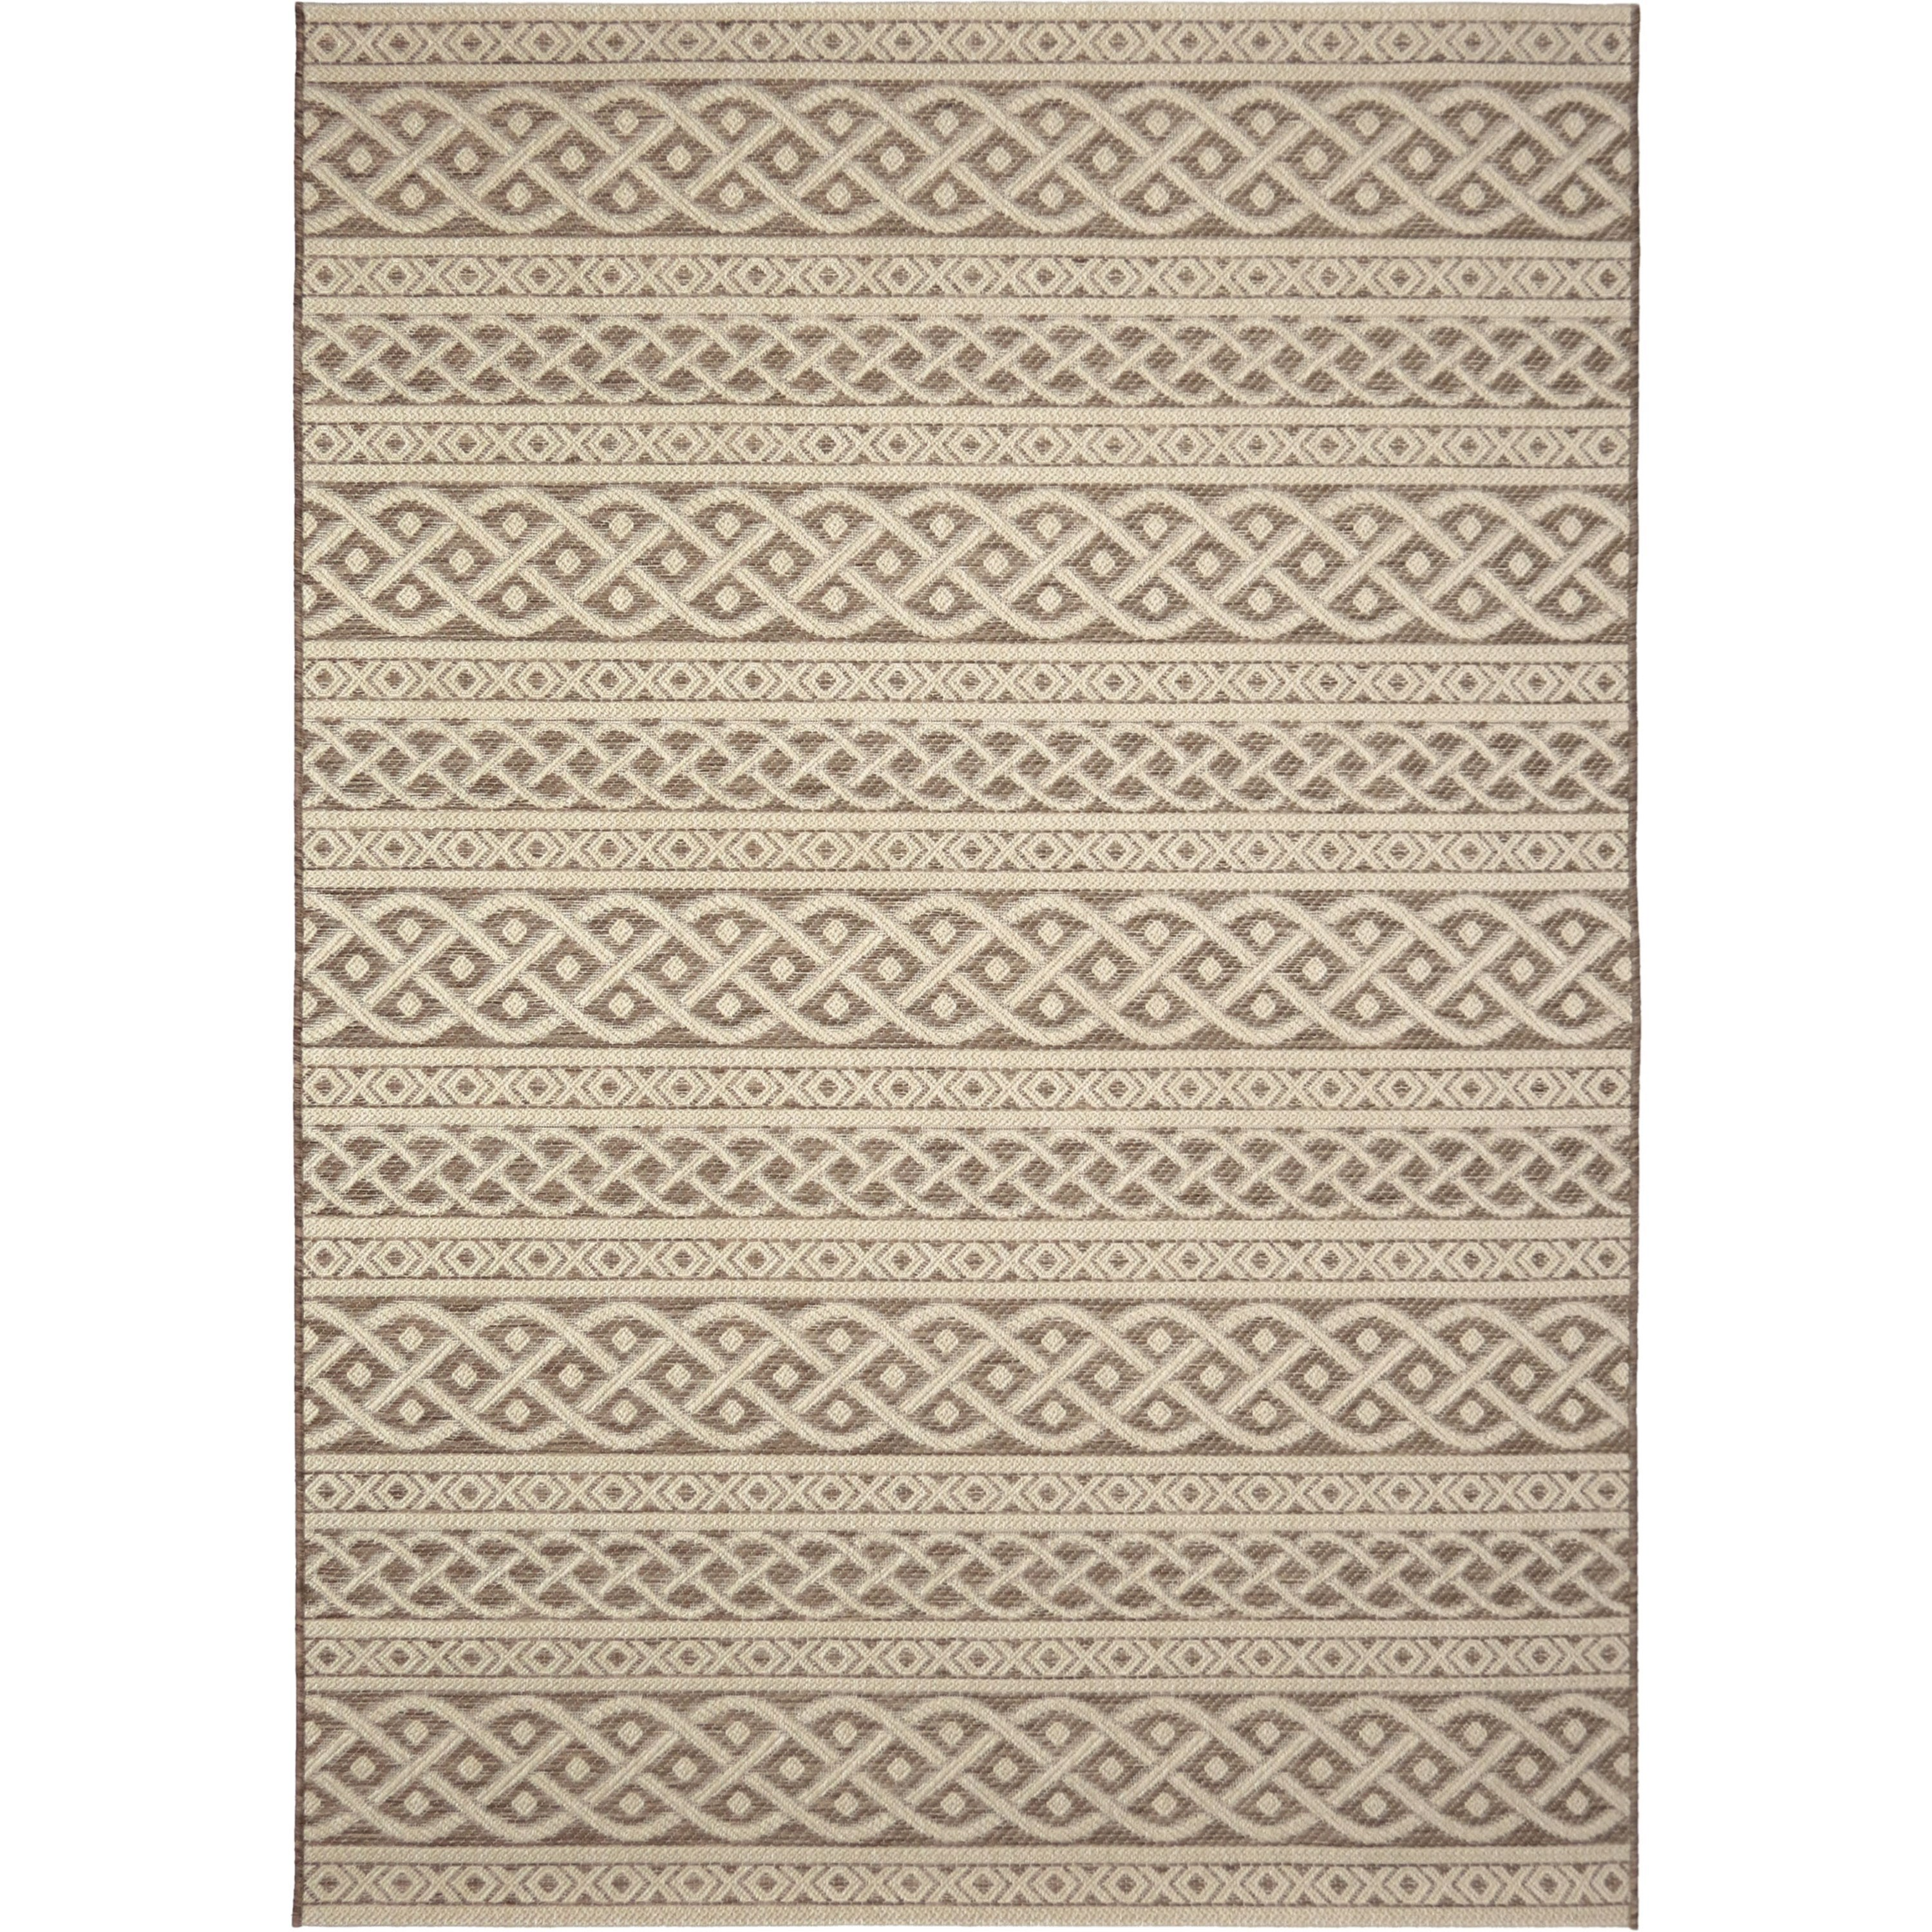 "Jersey Home Organic Cable tan 7'7"" x 10'10"" Rug by Orian Rugs at Mueller Furniture"